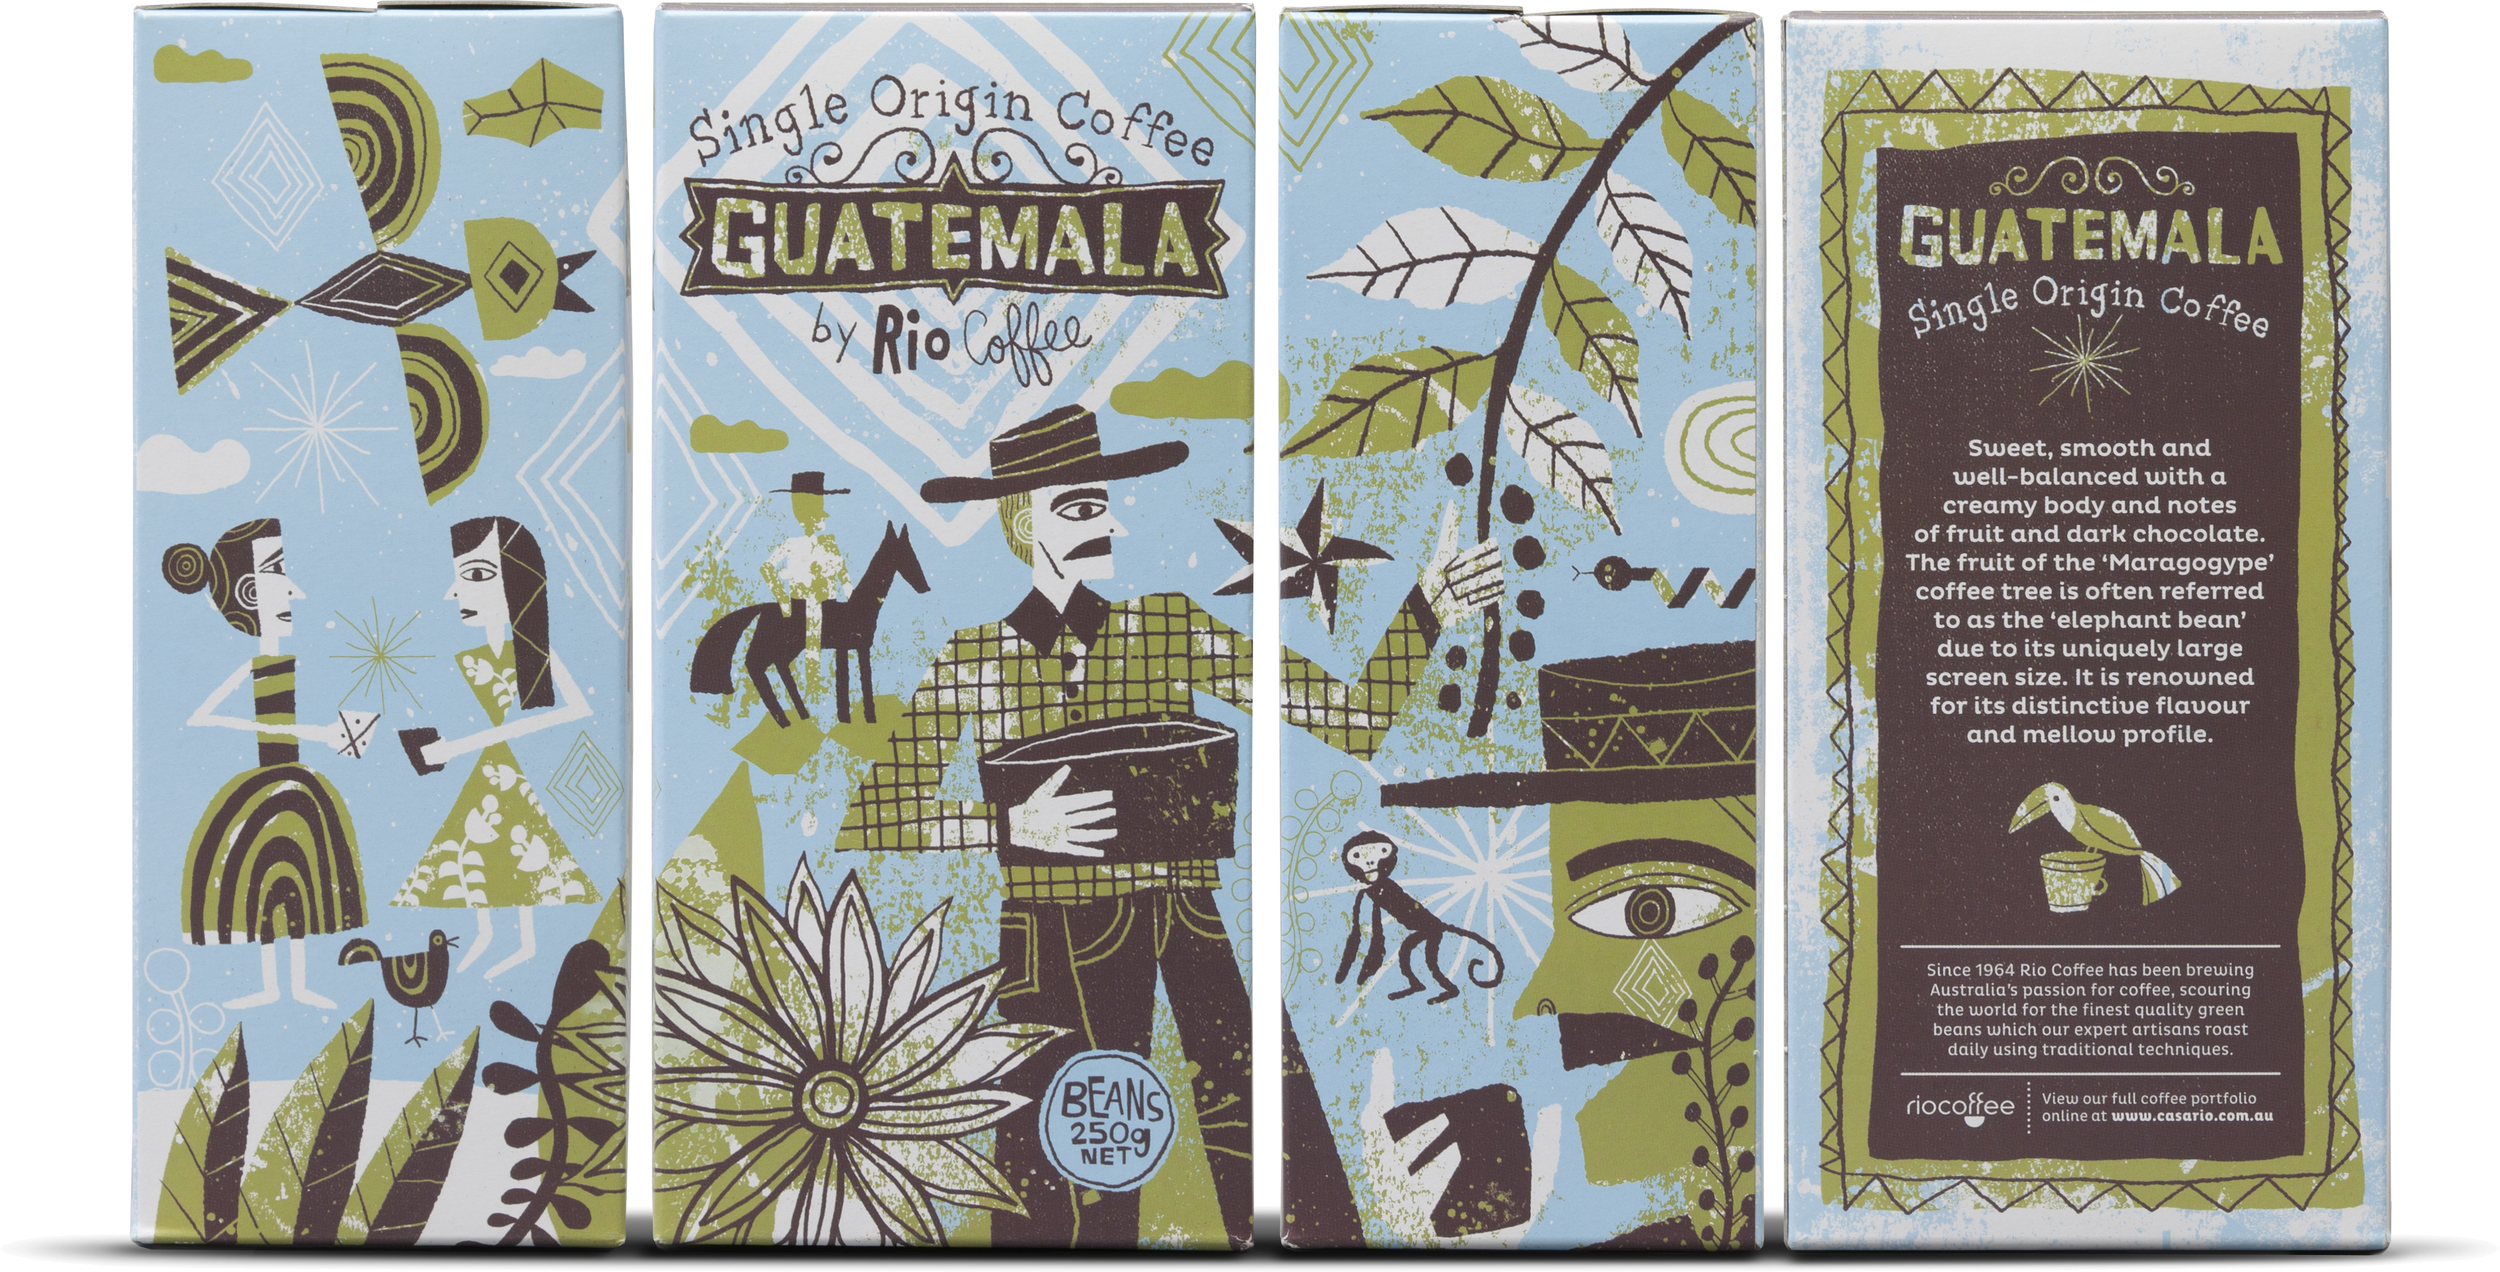 Award winning illustration and design for Rio Coffee's Guatemalan coffee packaging. This won a Silver Pentawards and was featured on many design and typography websites and book